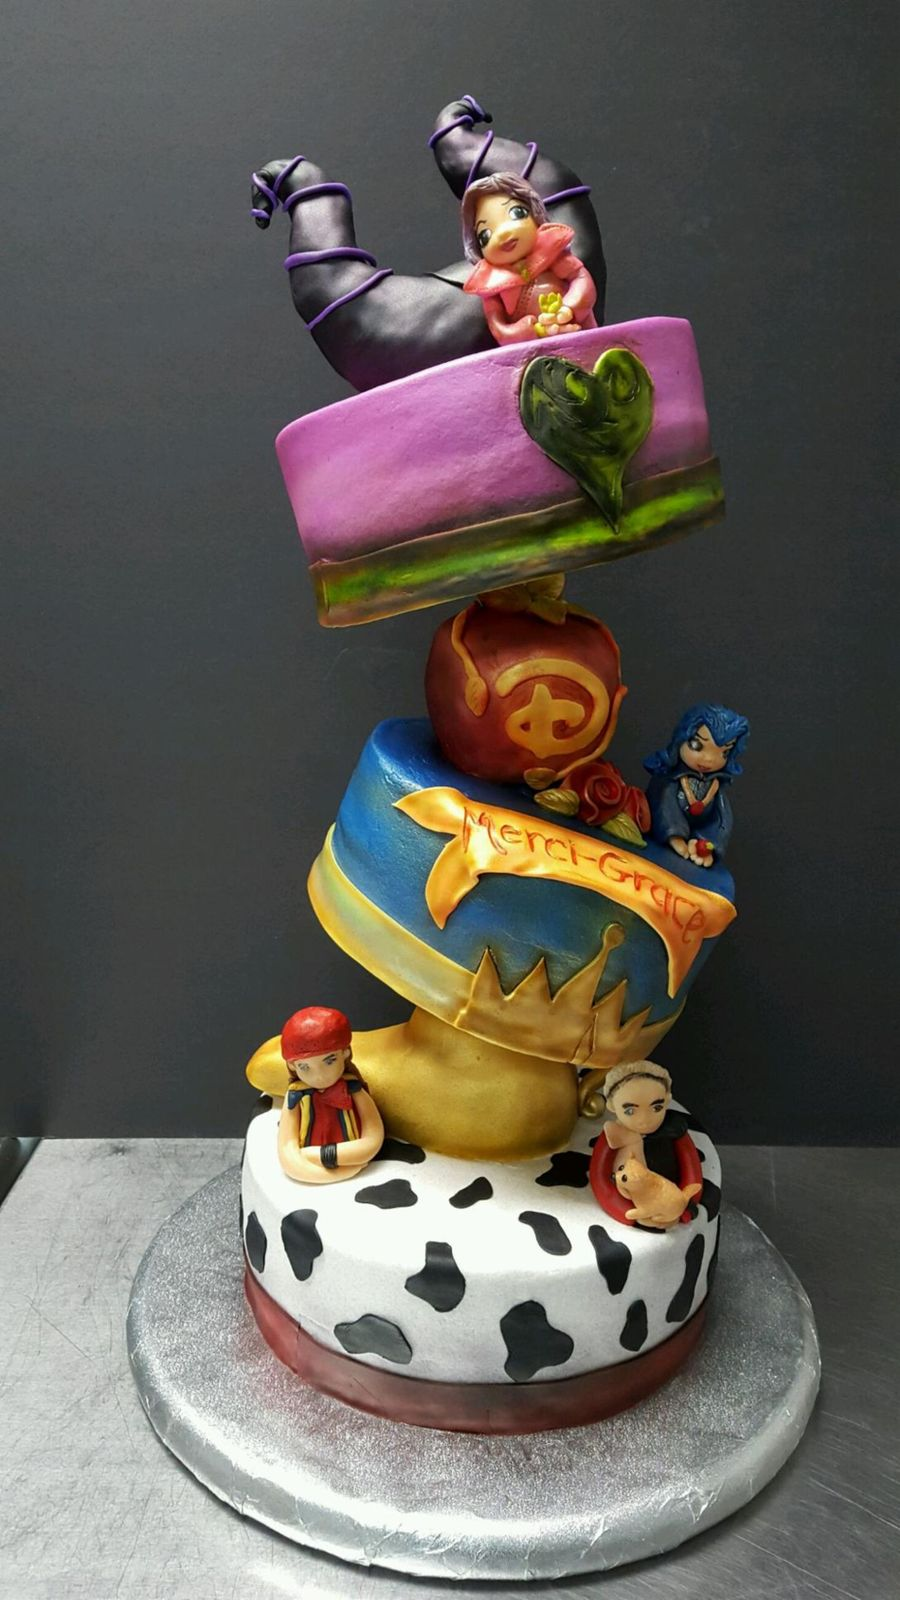 Disney's Descendants on Cake Central